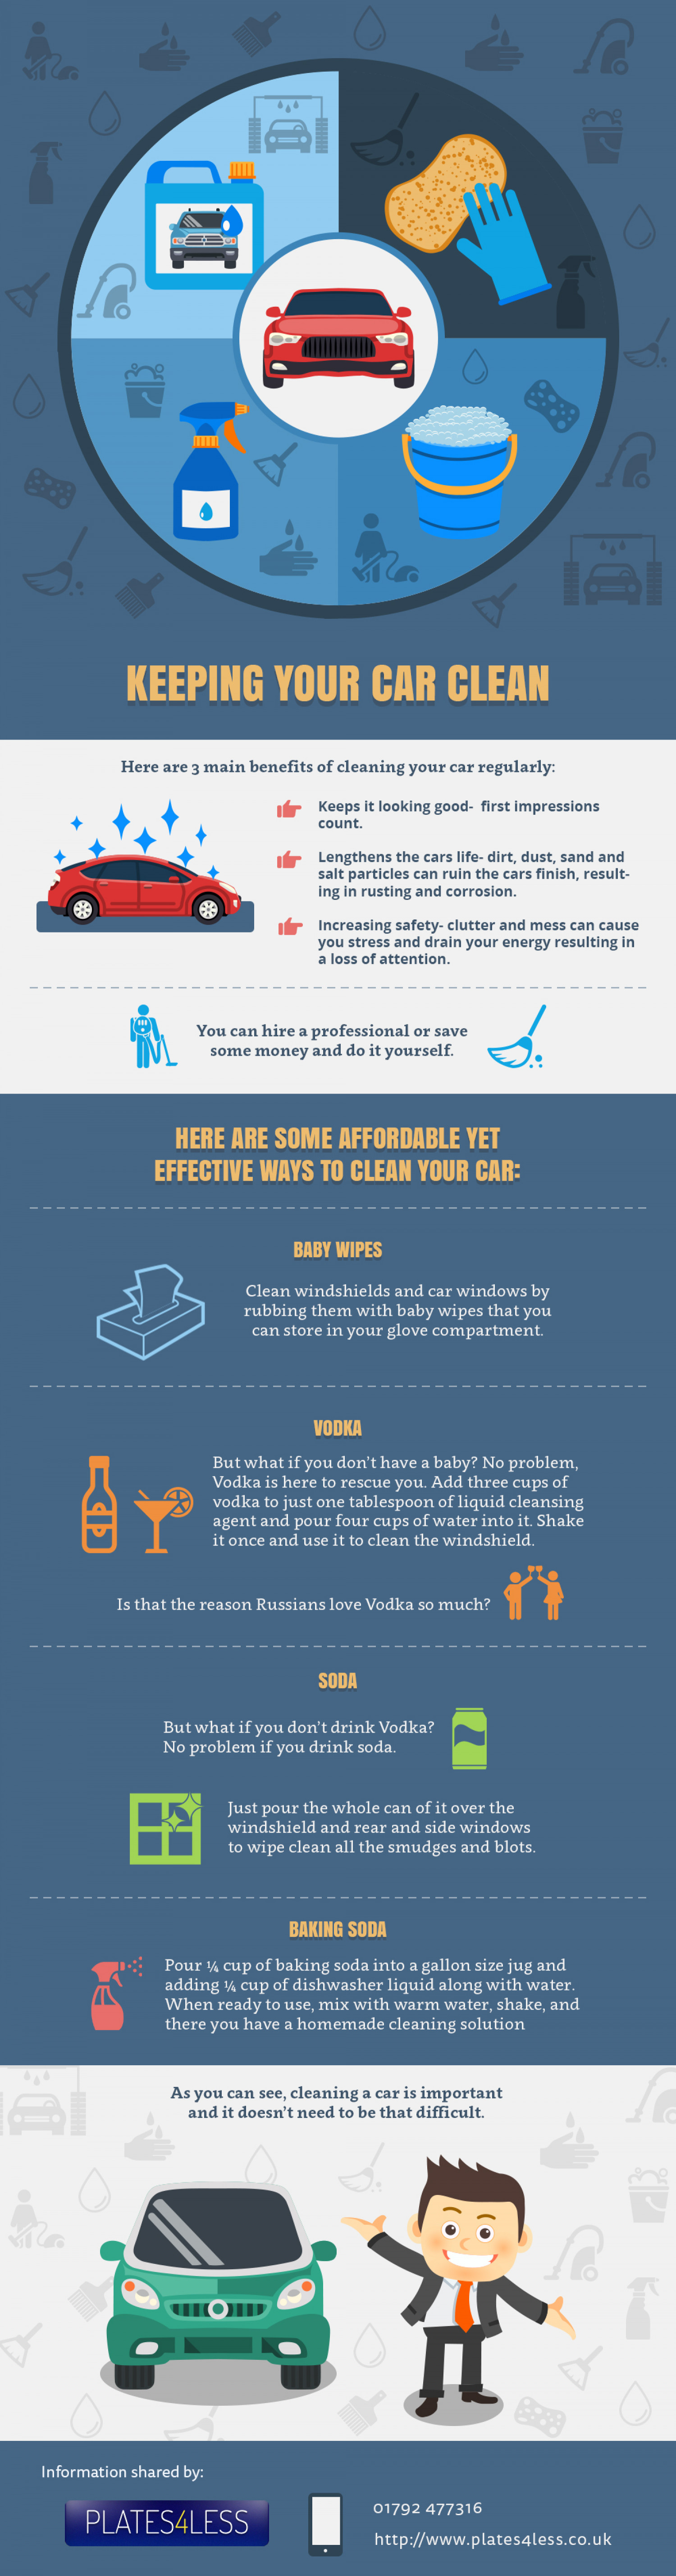 Keeping Your Car Clean Infographic